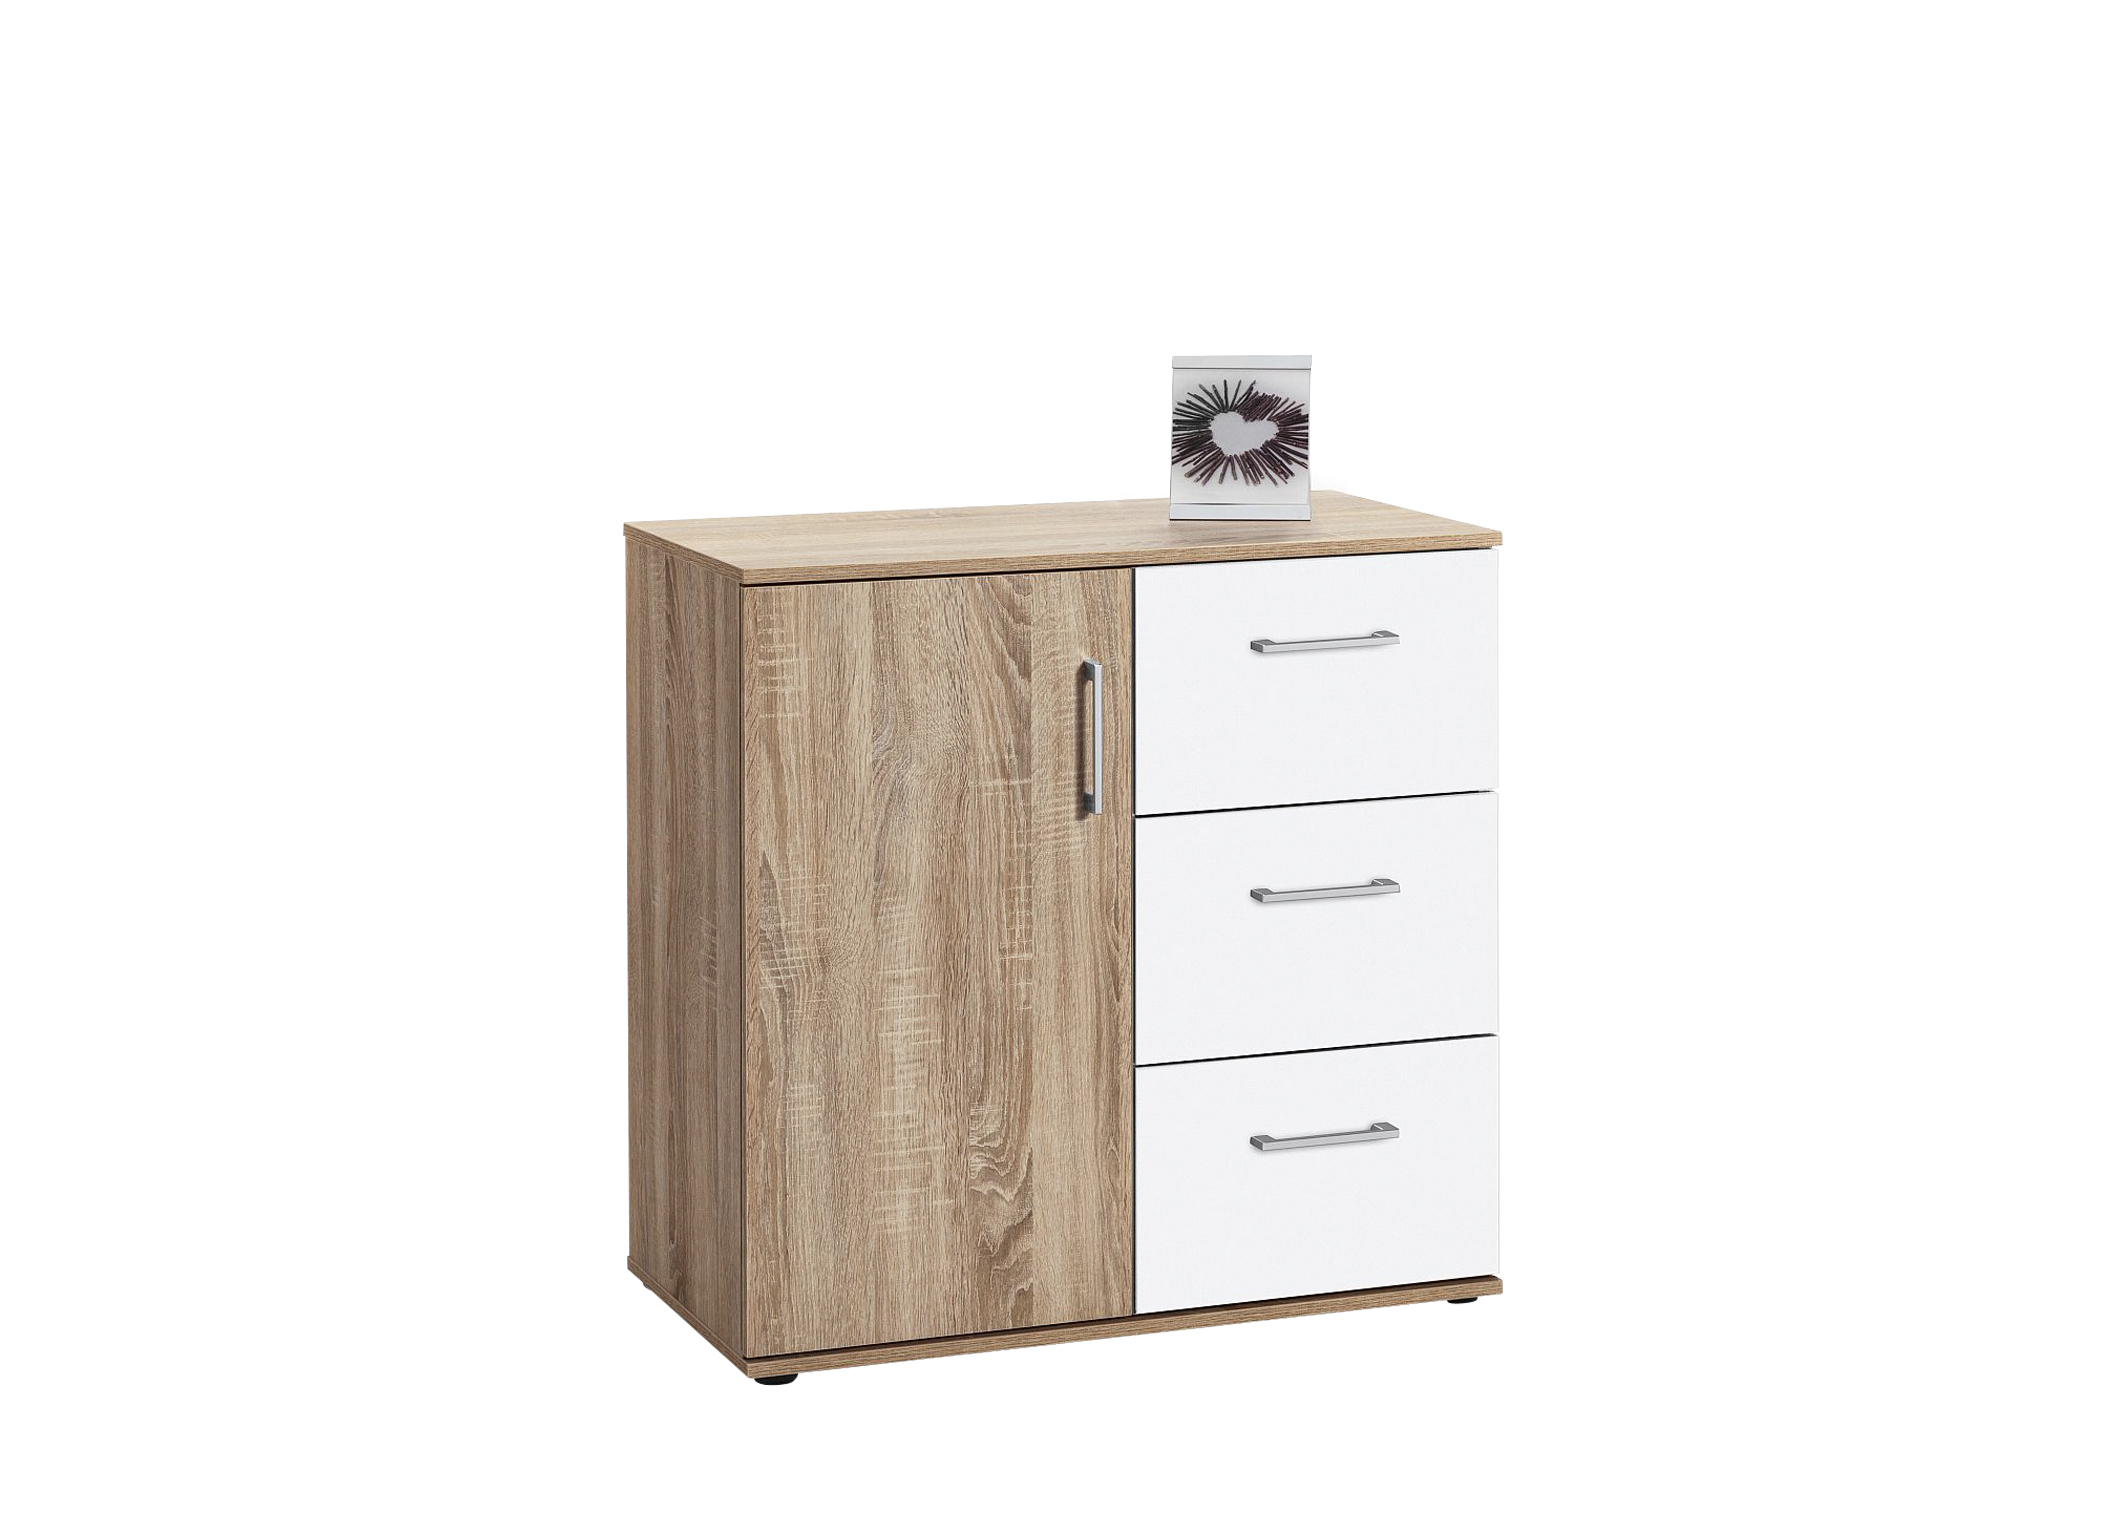 kommode mehrzweckkommode sideboard aktenschrank anrichte sonoma eiche weiss ebay. Black Bedroom Furniture Sets. Home Design Ideas